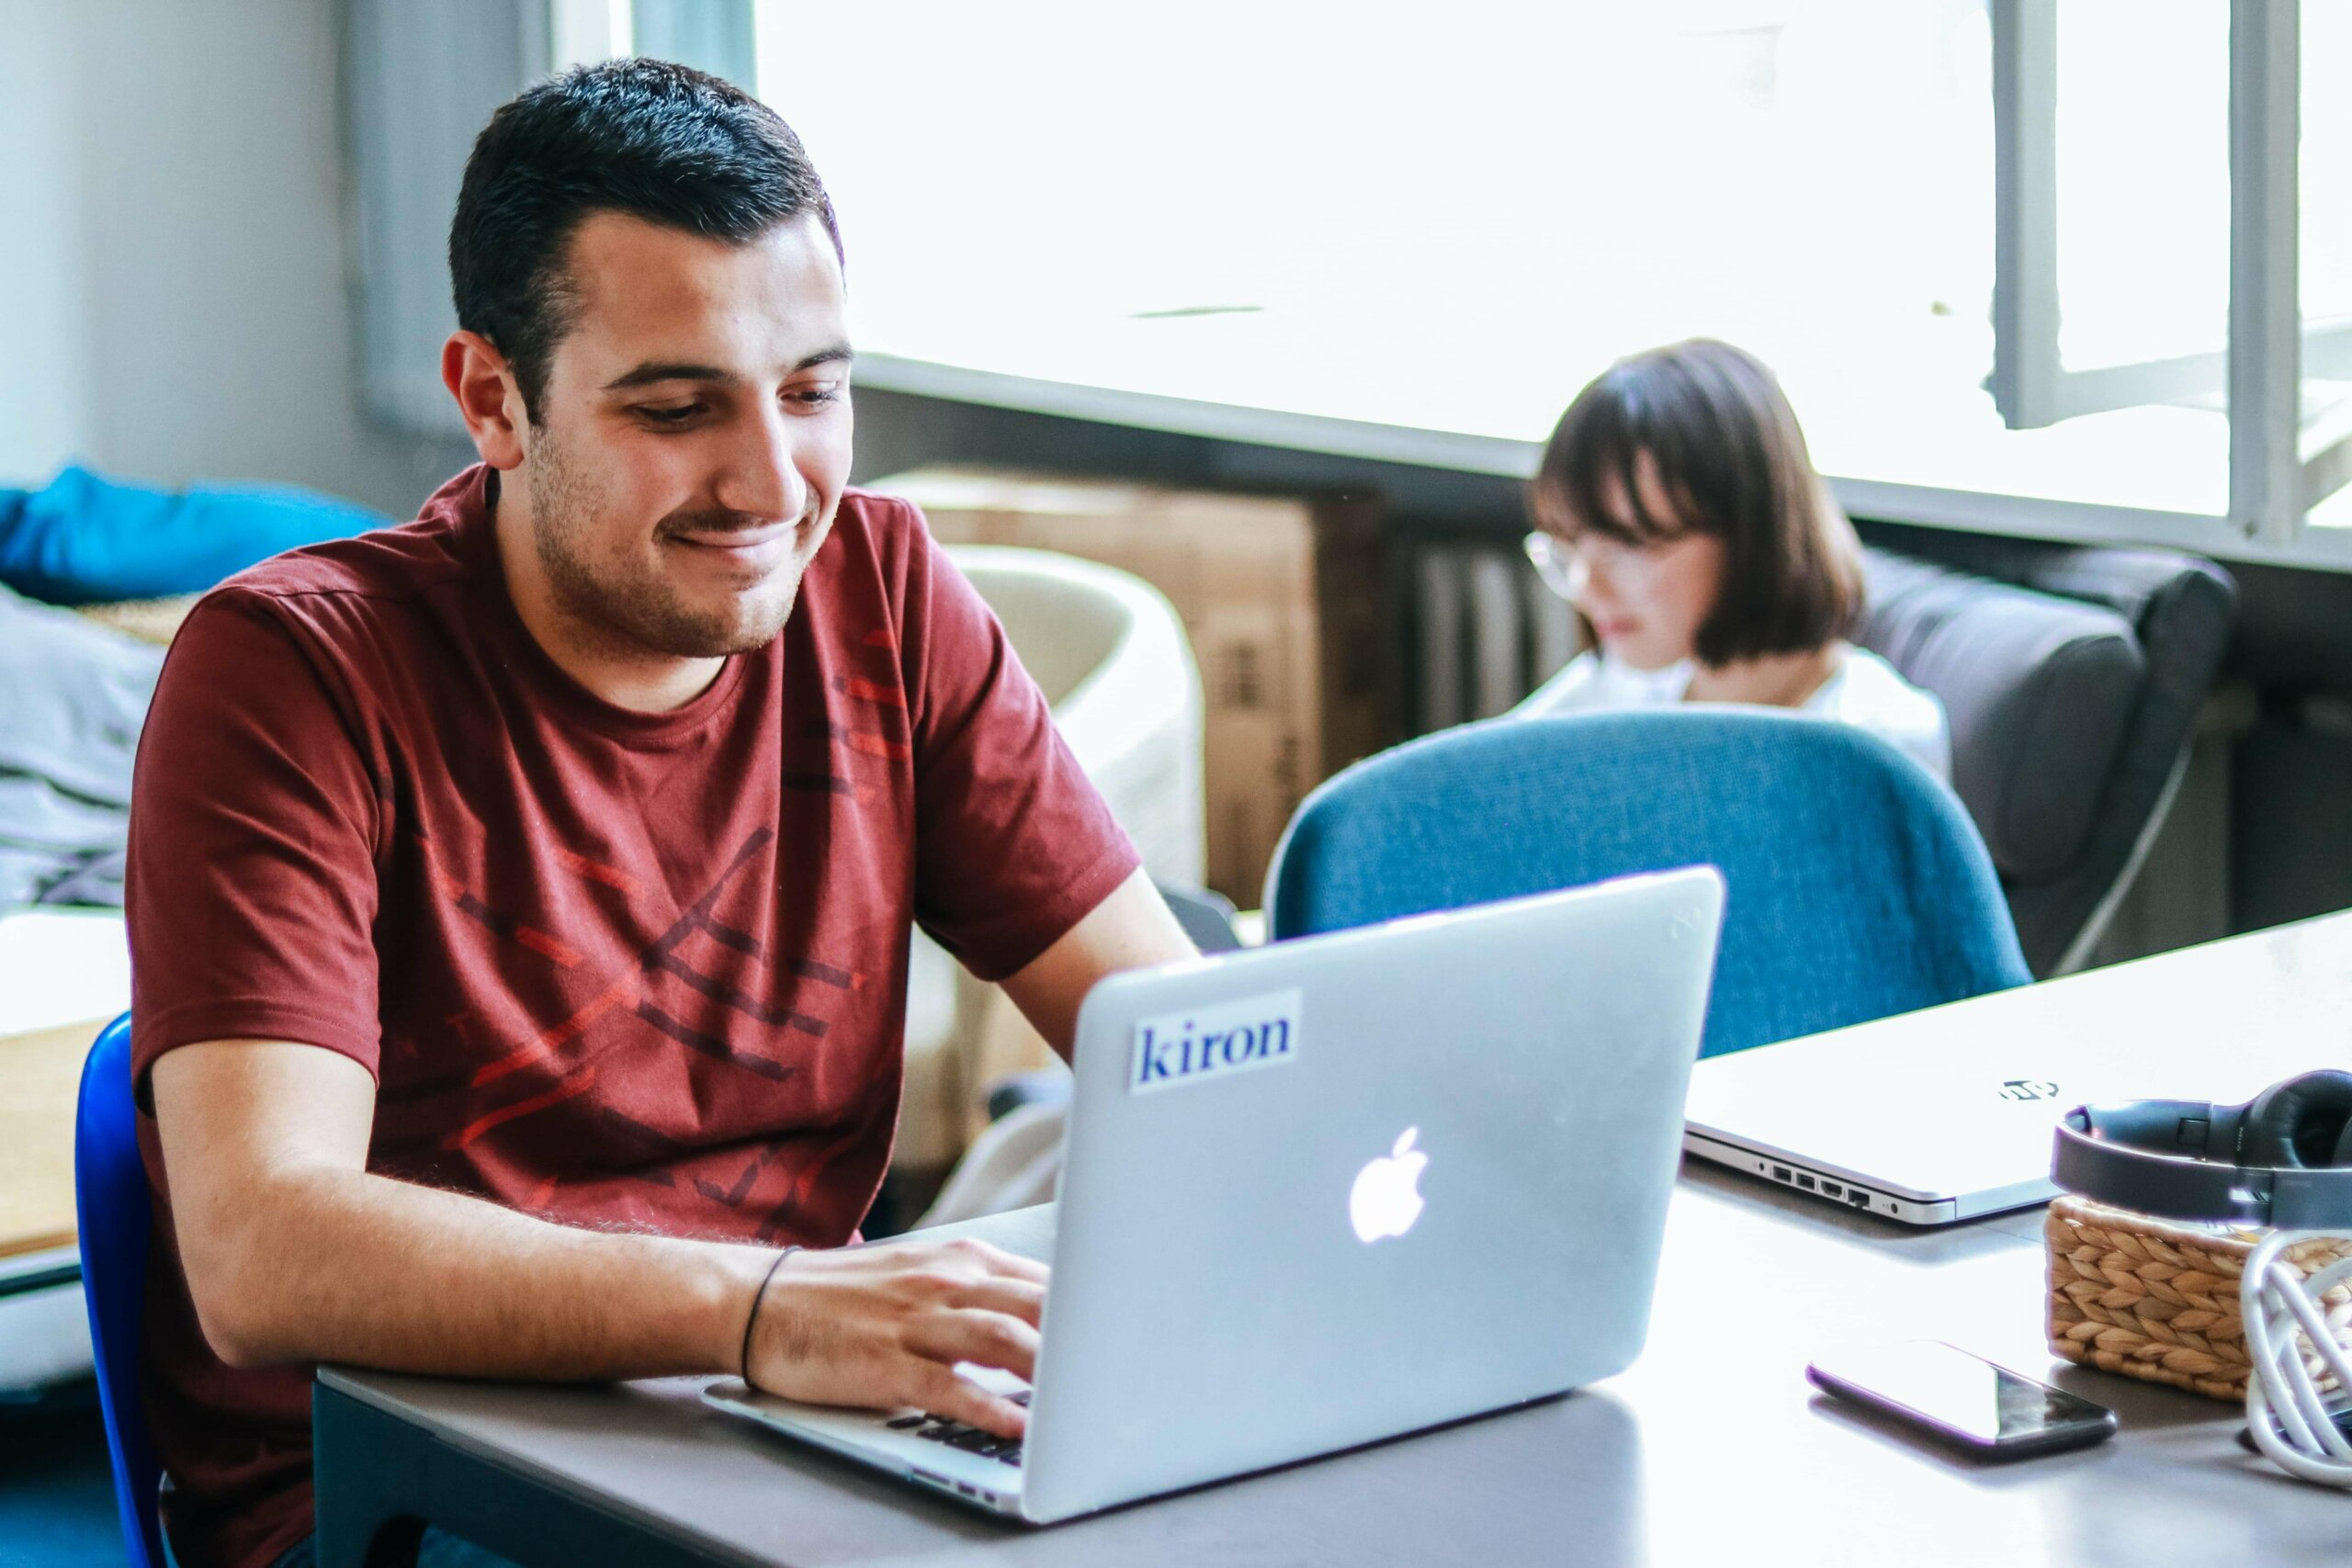 Kiron students Ehab studies with online courses